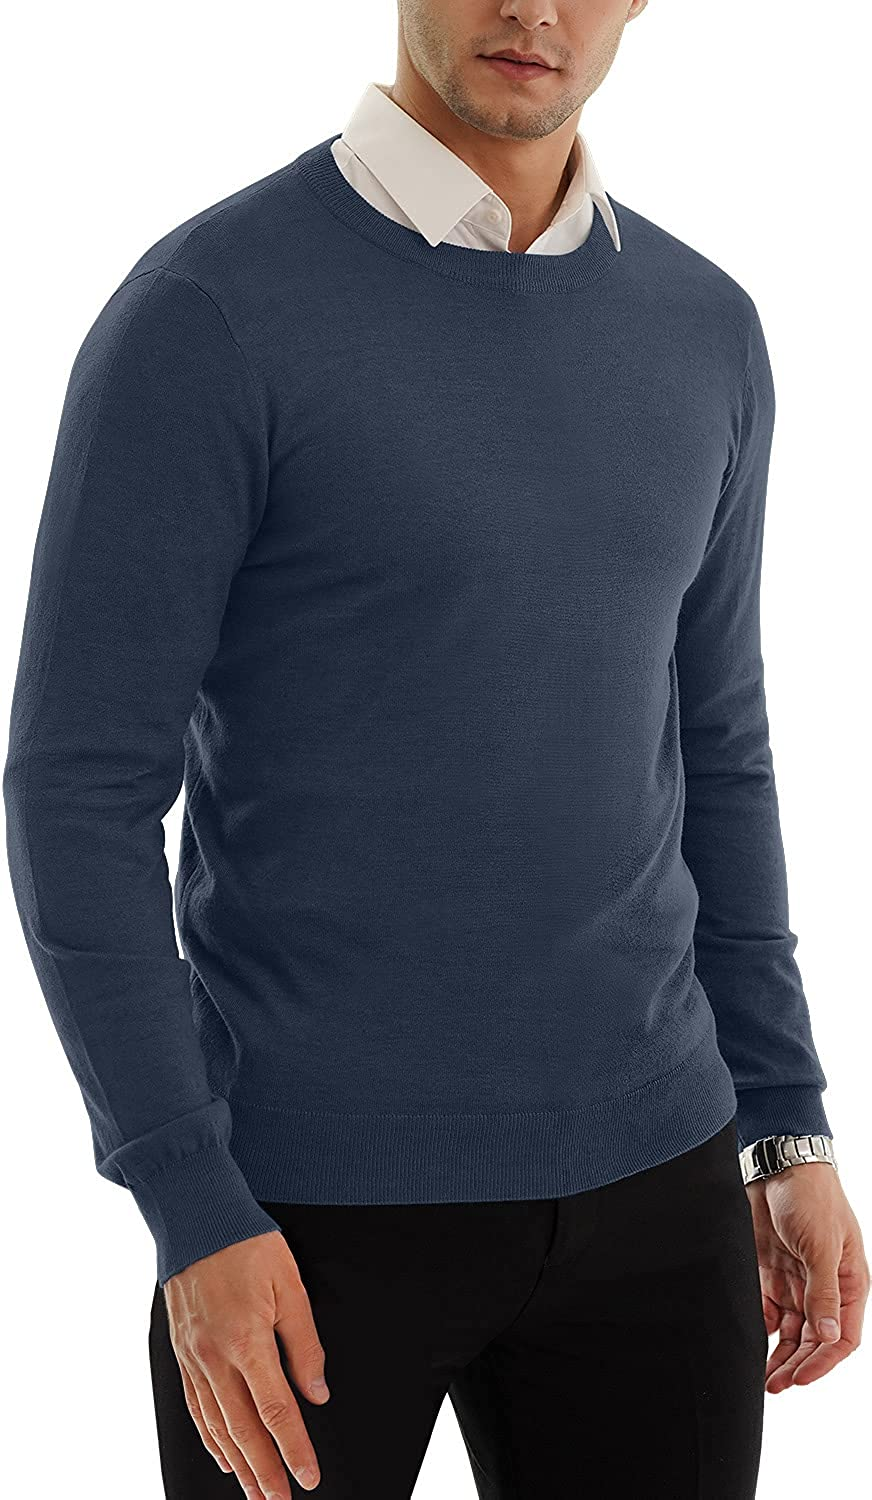 MLANM Men's Sale Casual Slim shipfree Fit Basic Sweaters Sleeve T Knitted Long